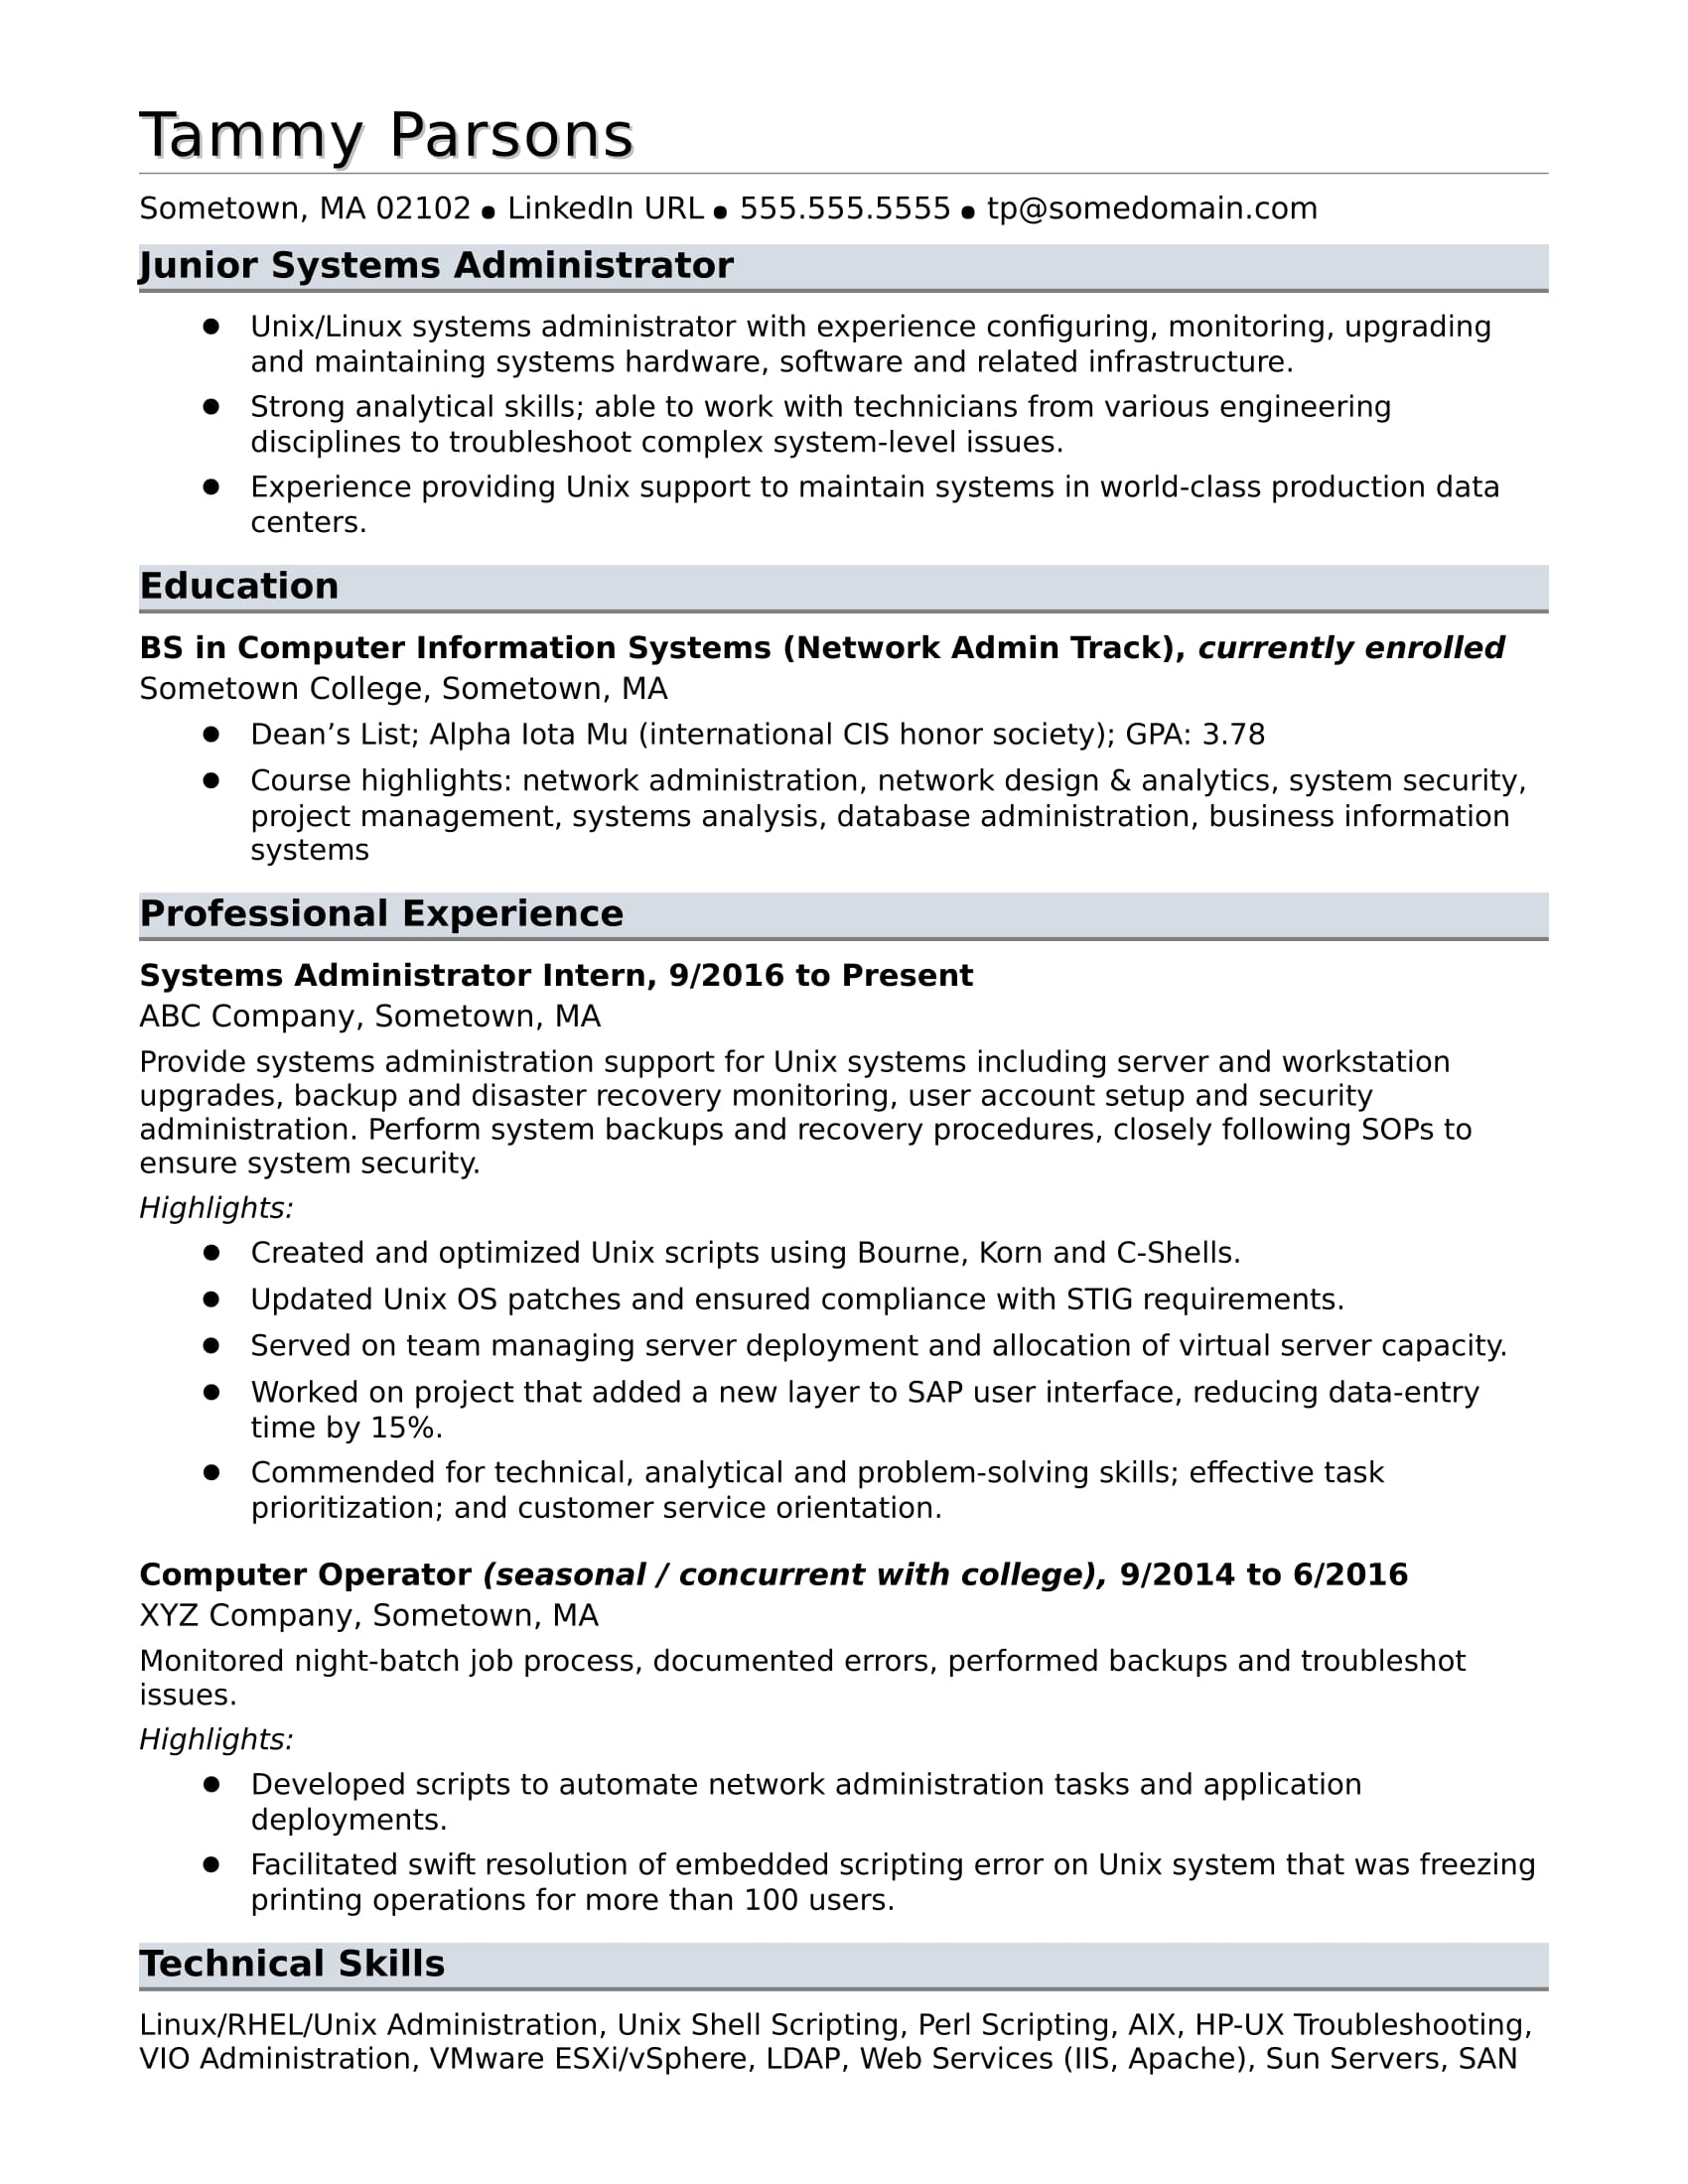 sample resume for an entry level systems administrator junior network administrator resume - Network Administrators Resume